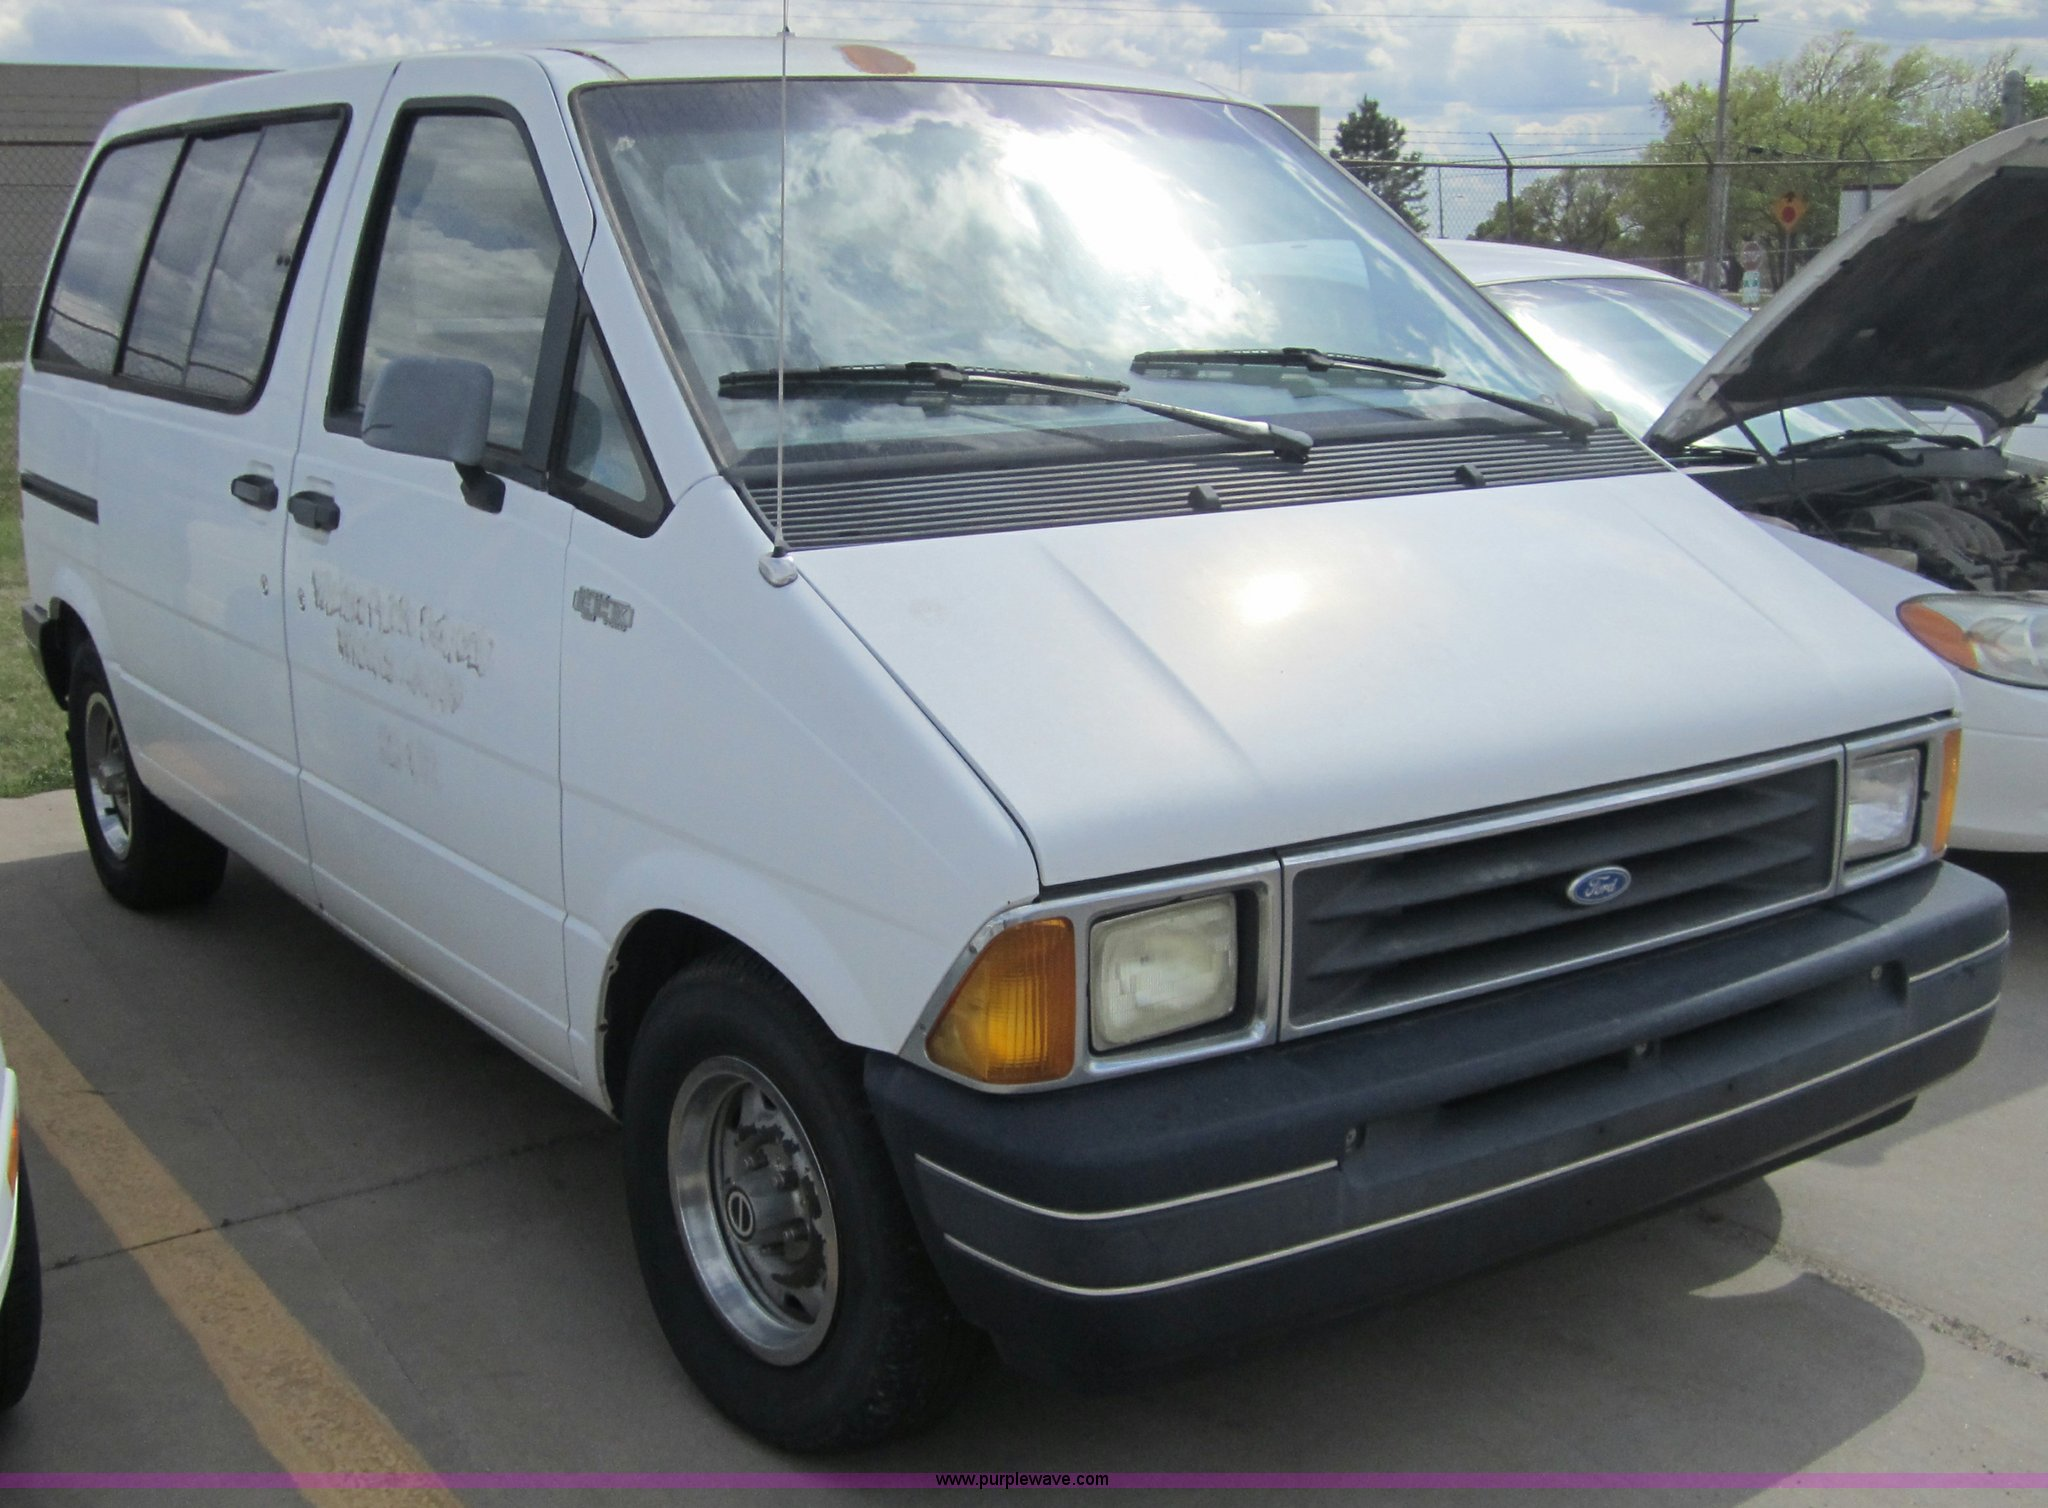 1991 ford aerostar van full size in new window